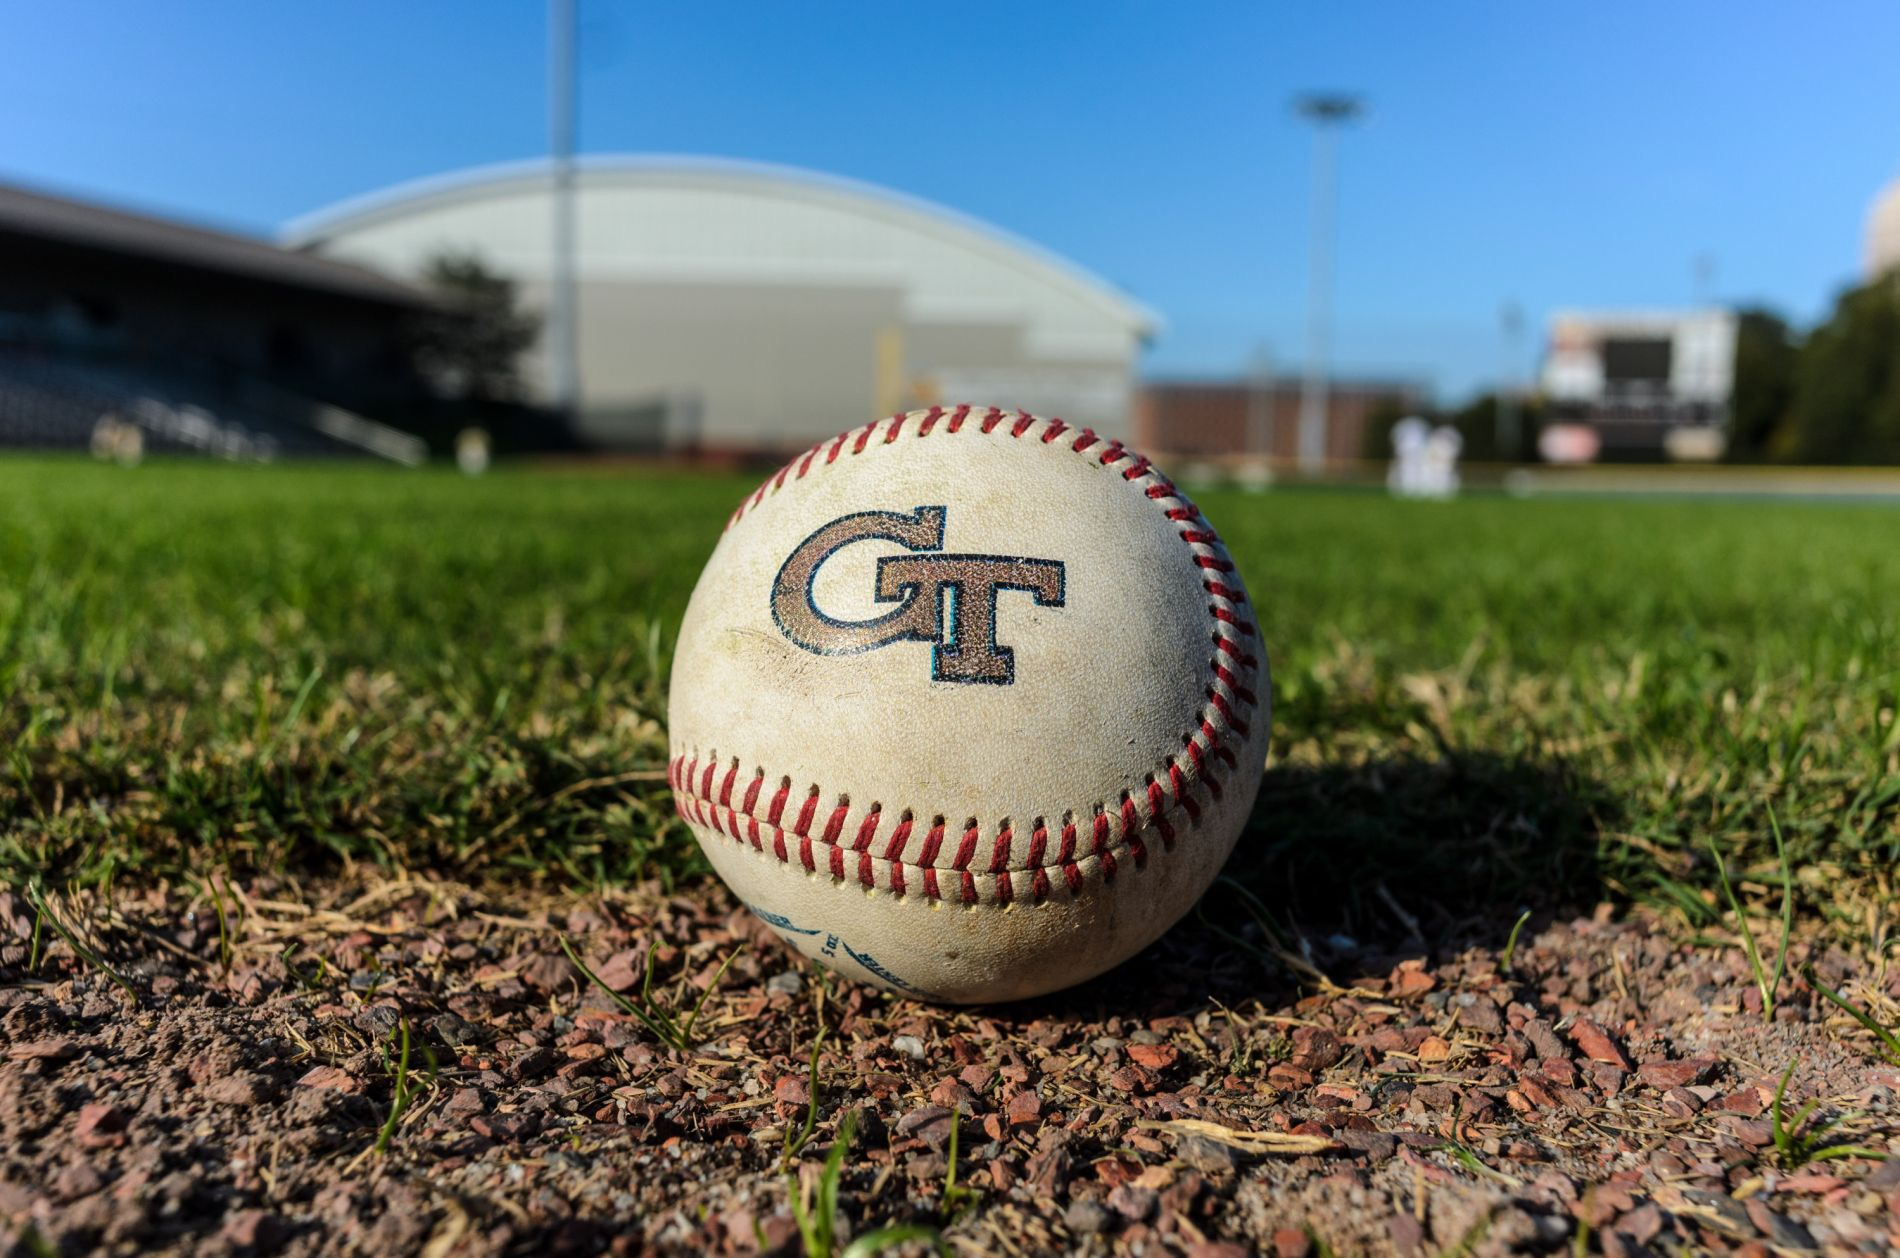 Georgia Tech Baseball vs. Ohio State (Game 2 of 3) | Game 6 Live Thread